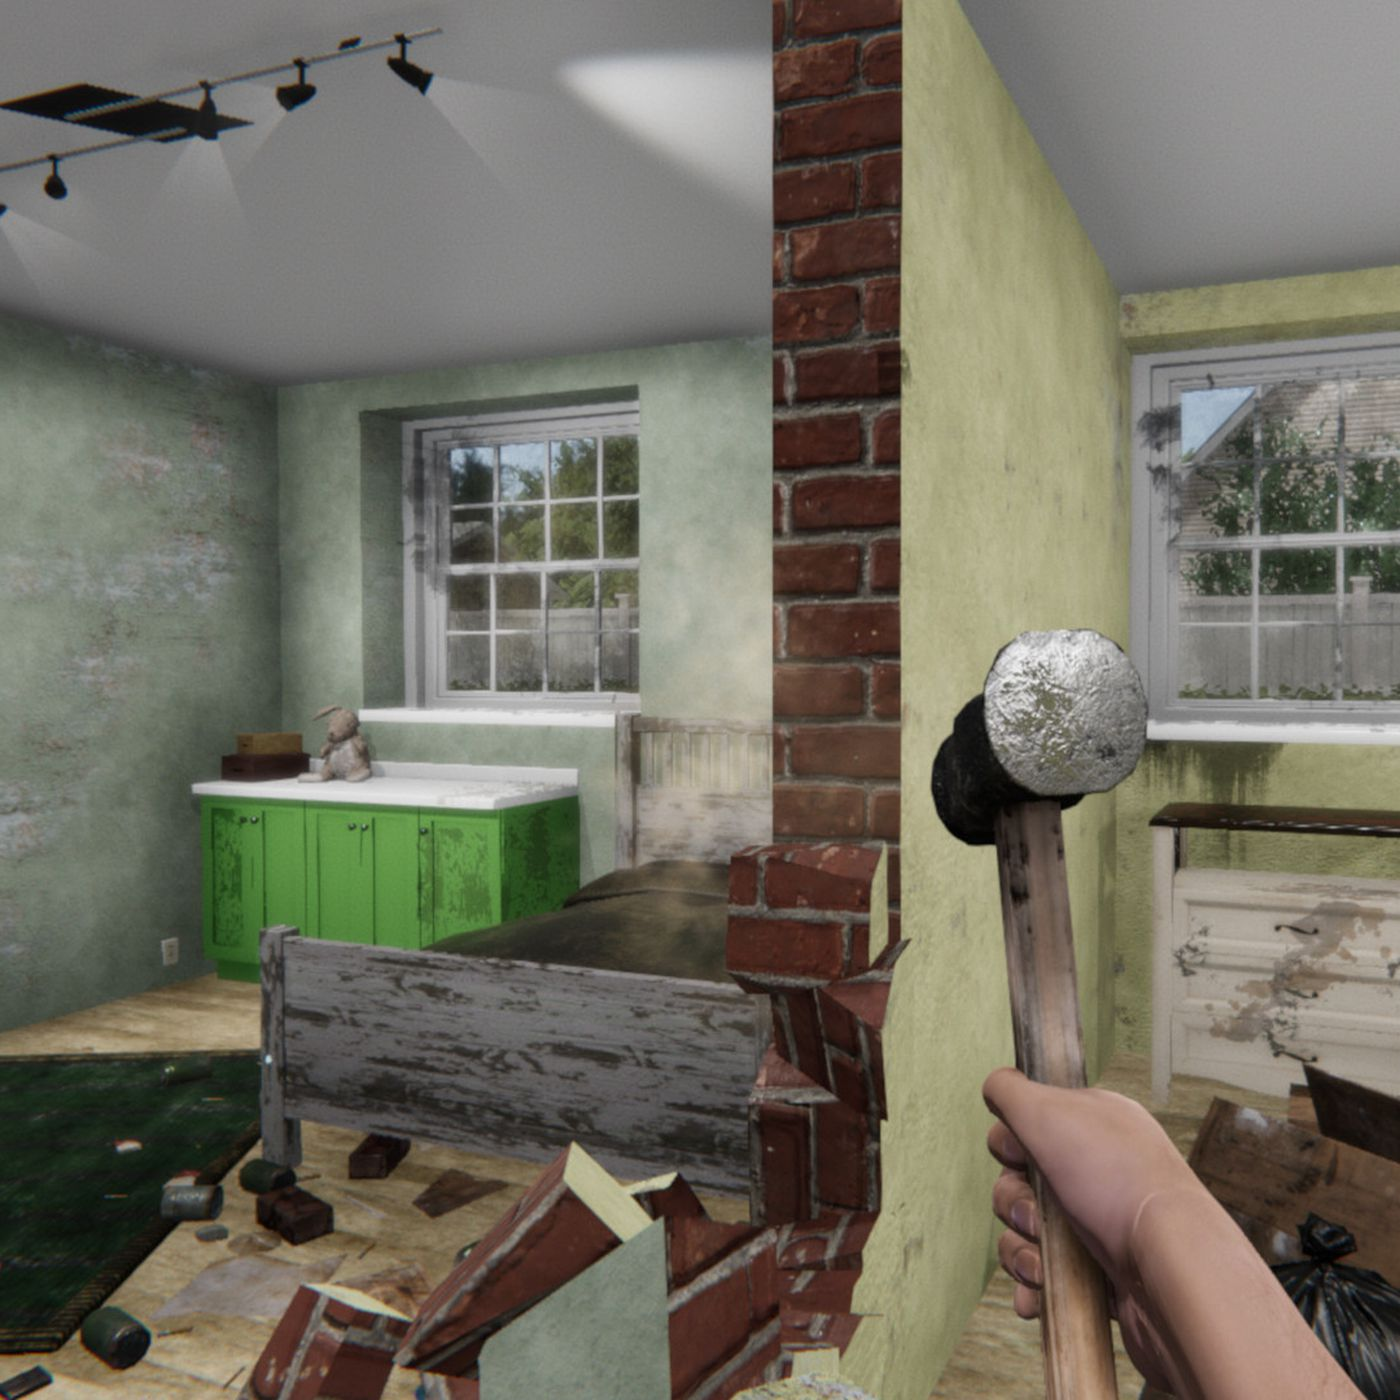 House Flipper Is A Home Repair Simulation Among Steams Best Sellers Building Wiring Games Polygon